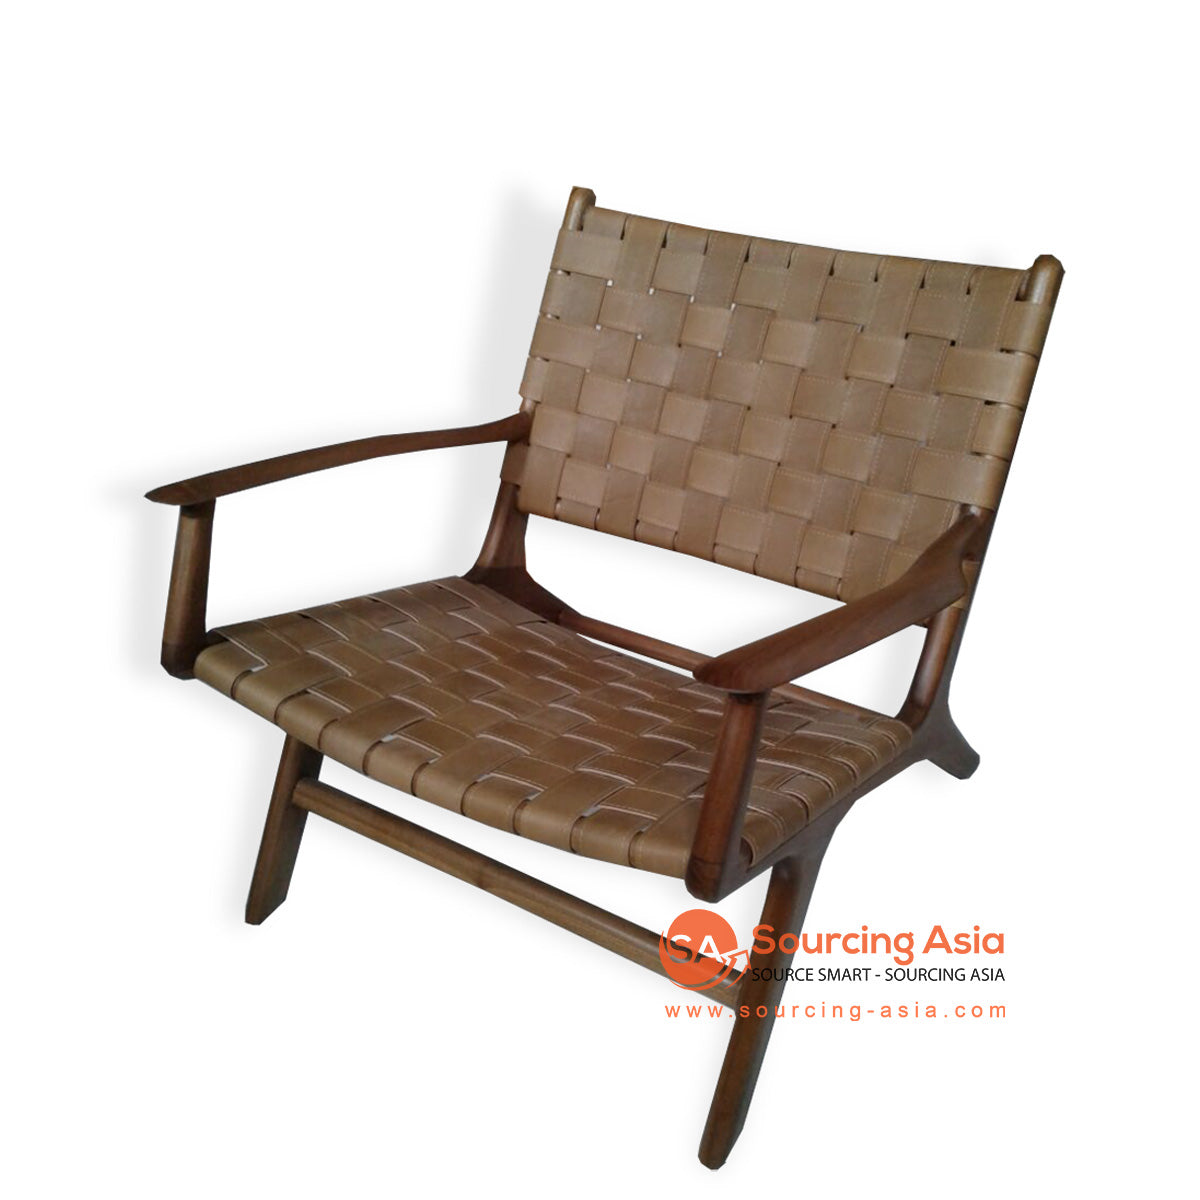 KUSJ002-1 WOVEN LEATHER LAZY CHAIR WITH ARMS